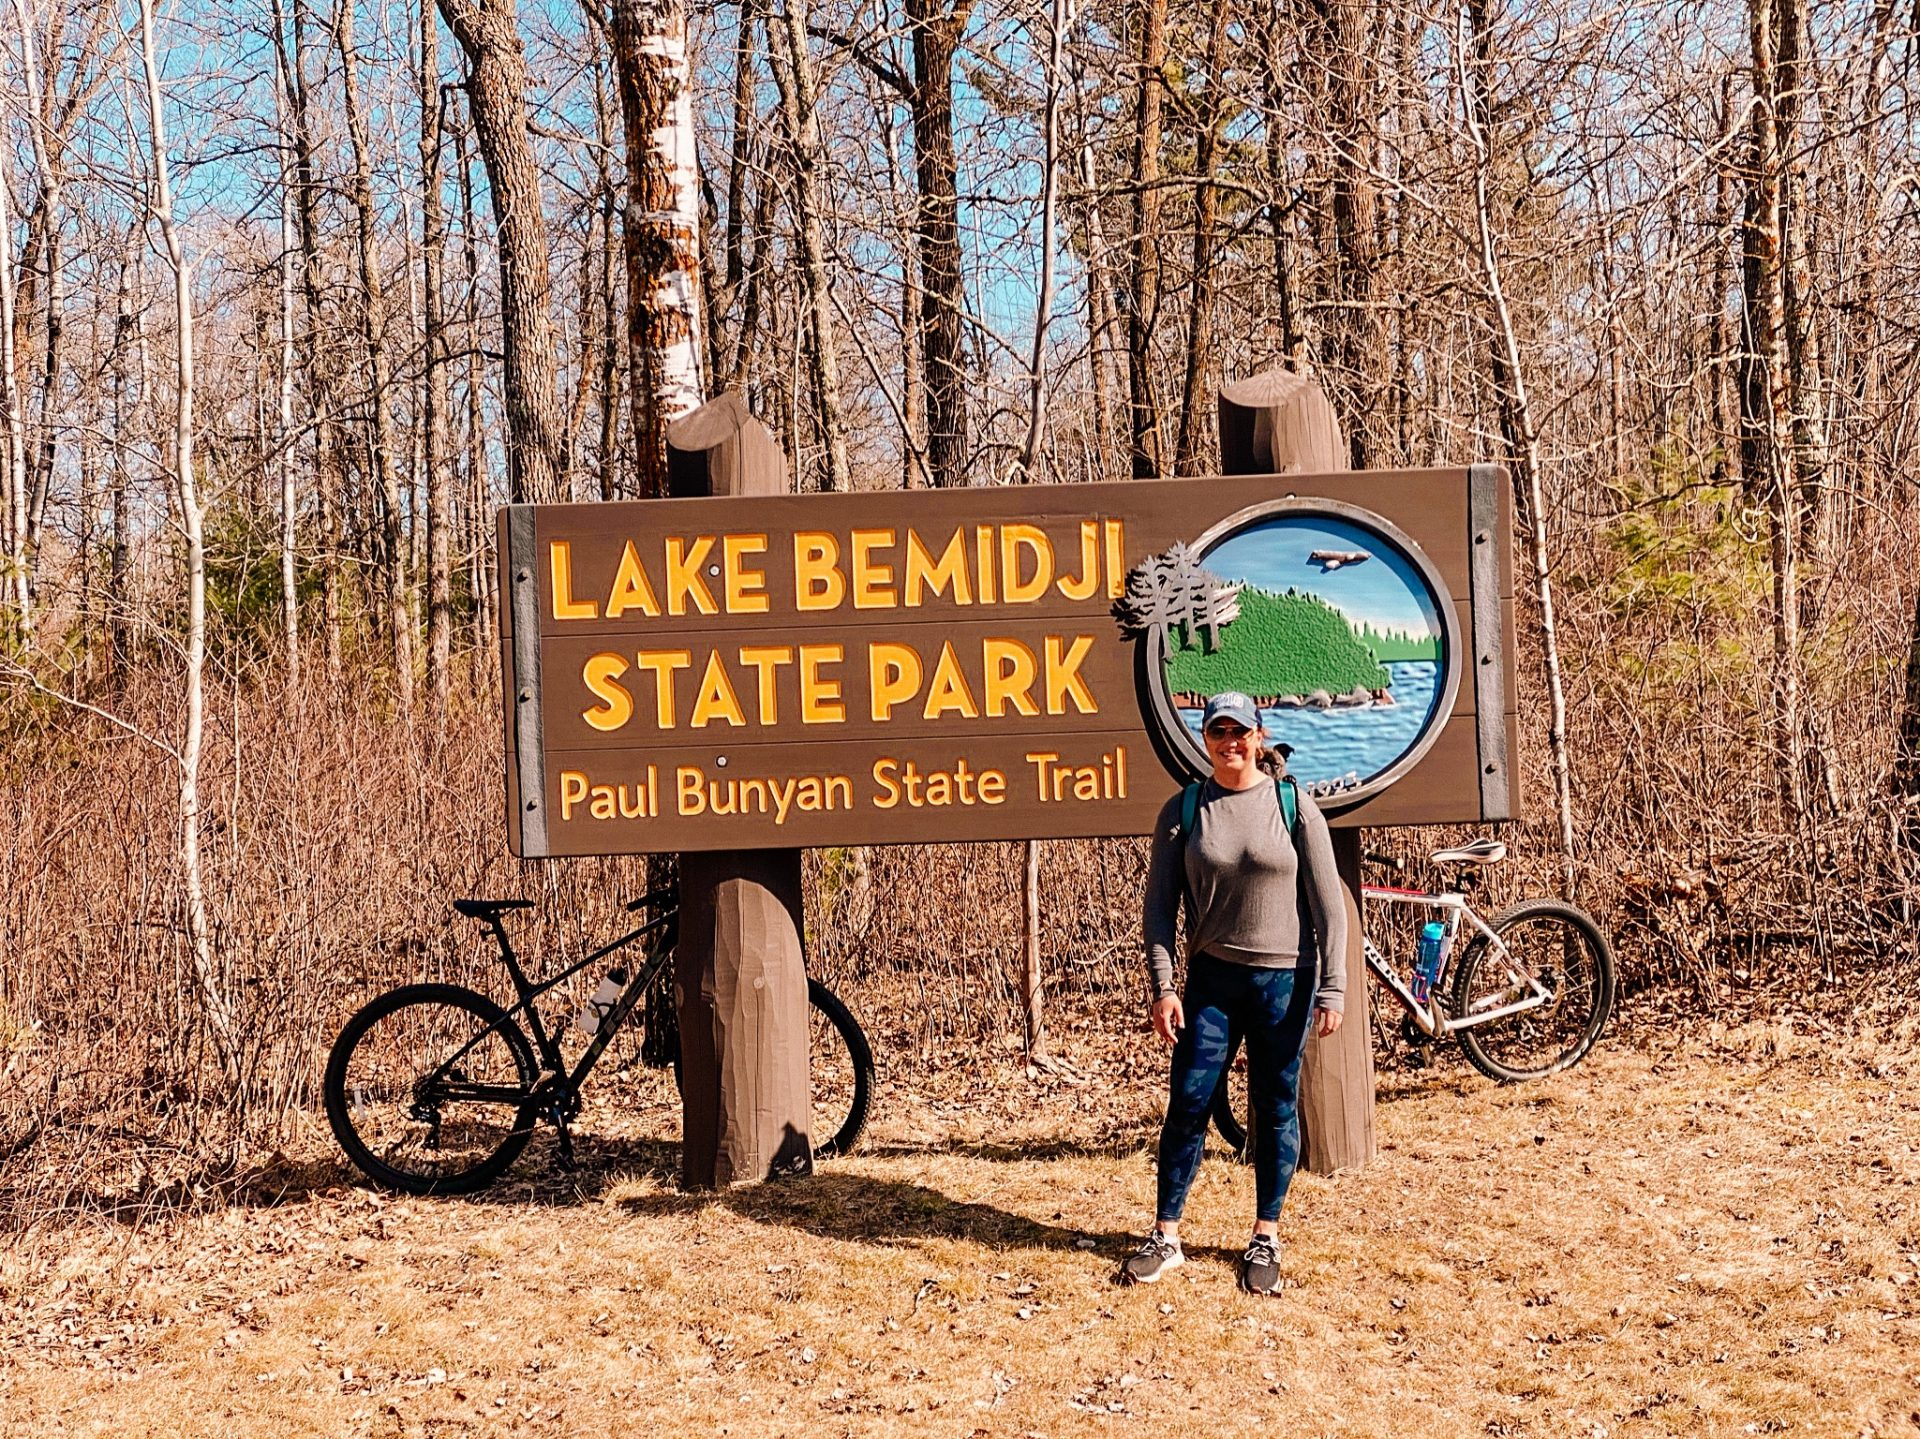 Woman standing in front of the Lake Bemidji State Park Paul Bunyan State Trail sign with a dog in a backpack carrier and two bikes propped up behind the sign.